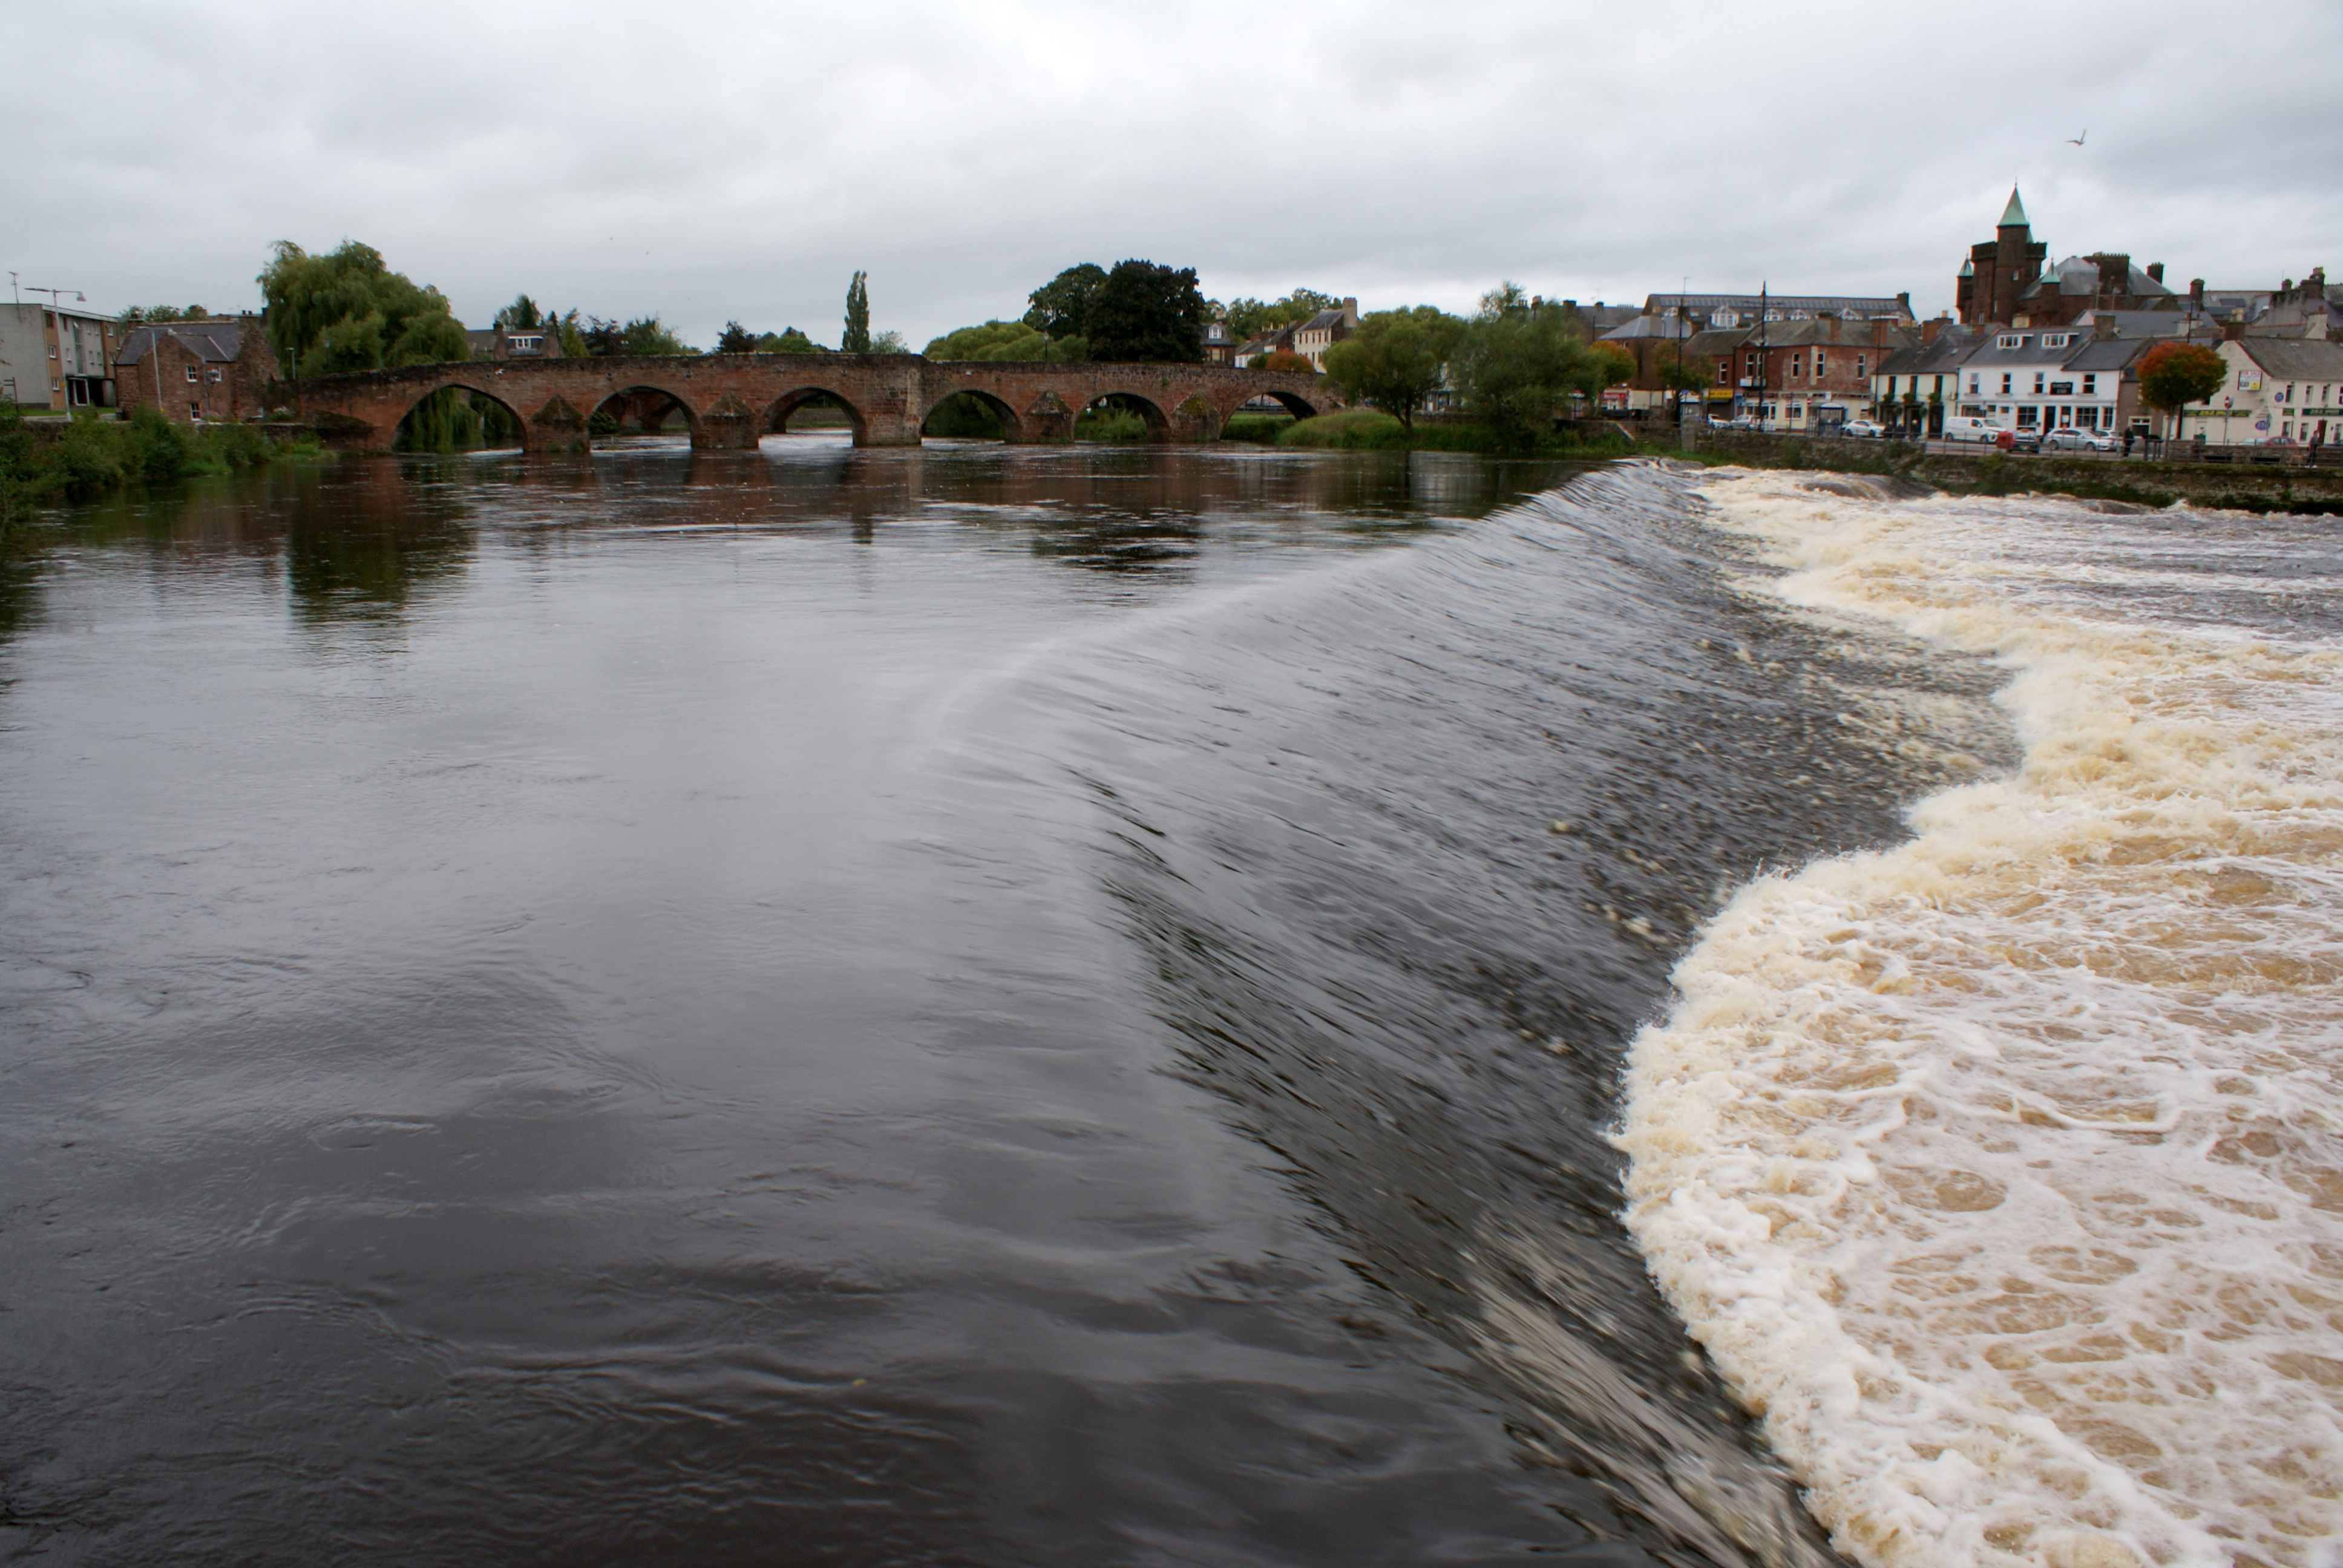 The weir on the River Nith at Dumfries. The weir is known locally as 'The Caul'. Dumfries is the traditional county town of the historic county of Dumfriesshire.